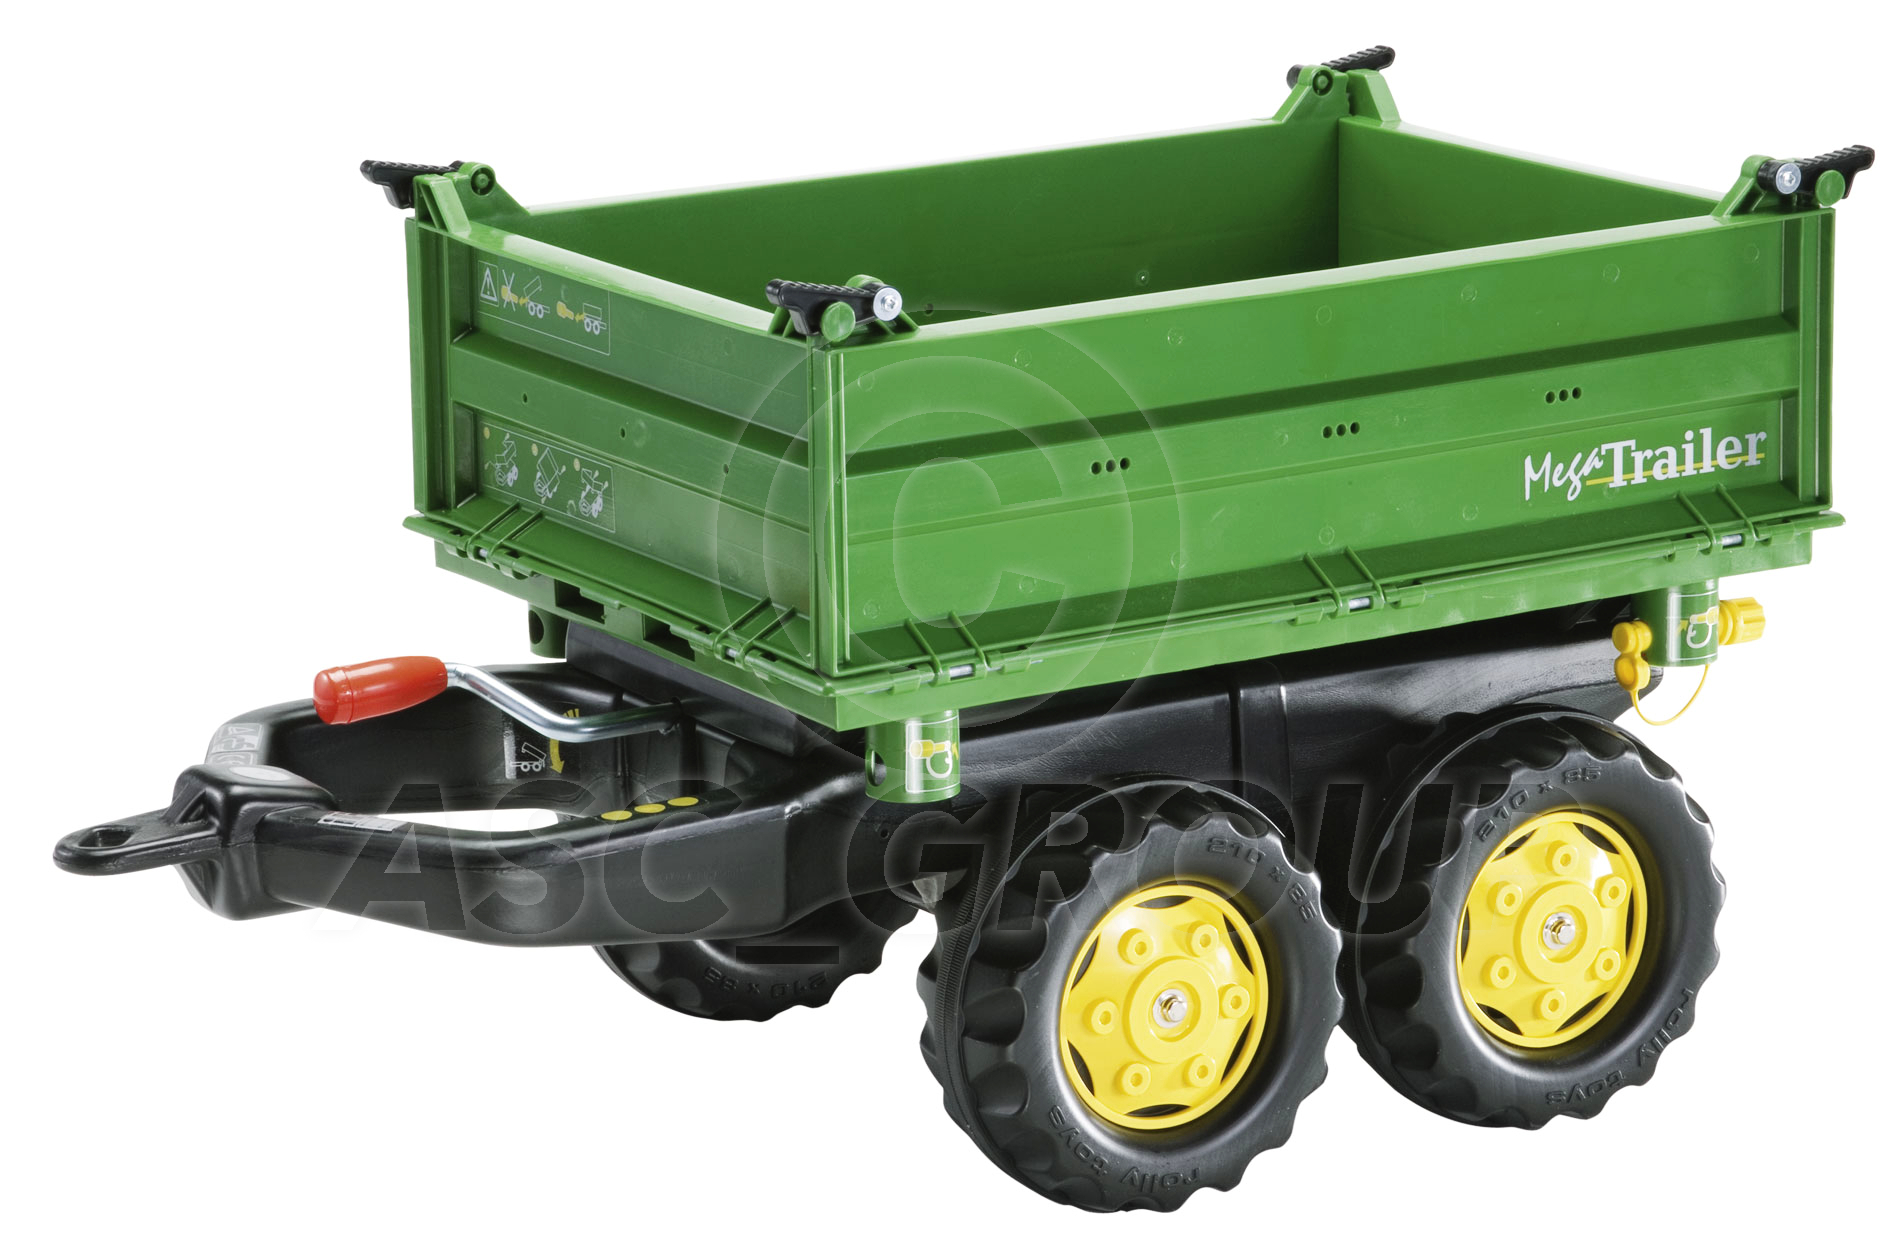 Rolly Toys John Deere Pedal Tractors Trailers Loader